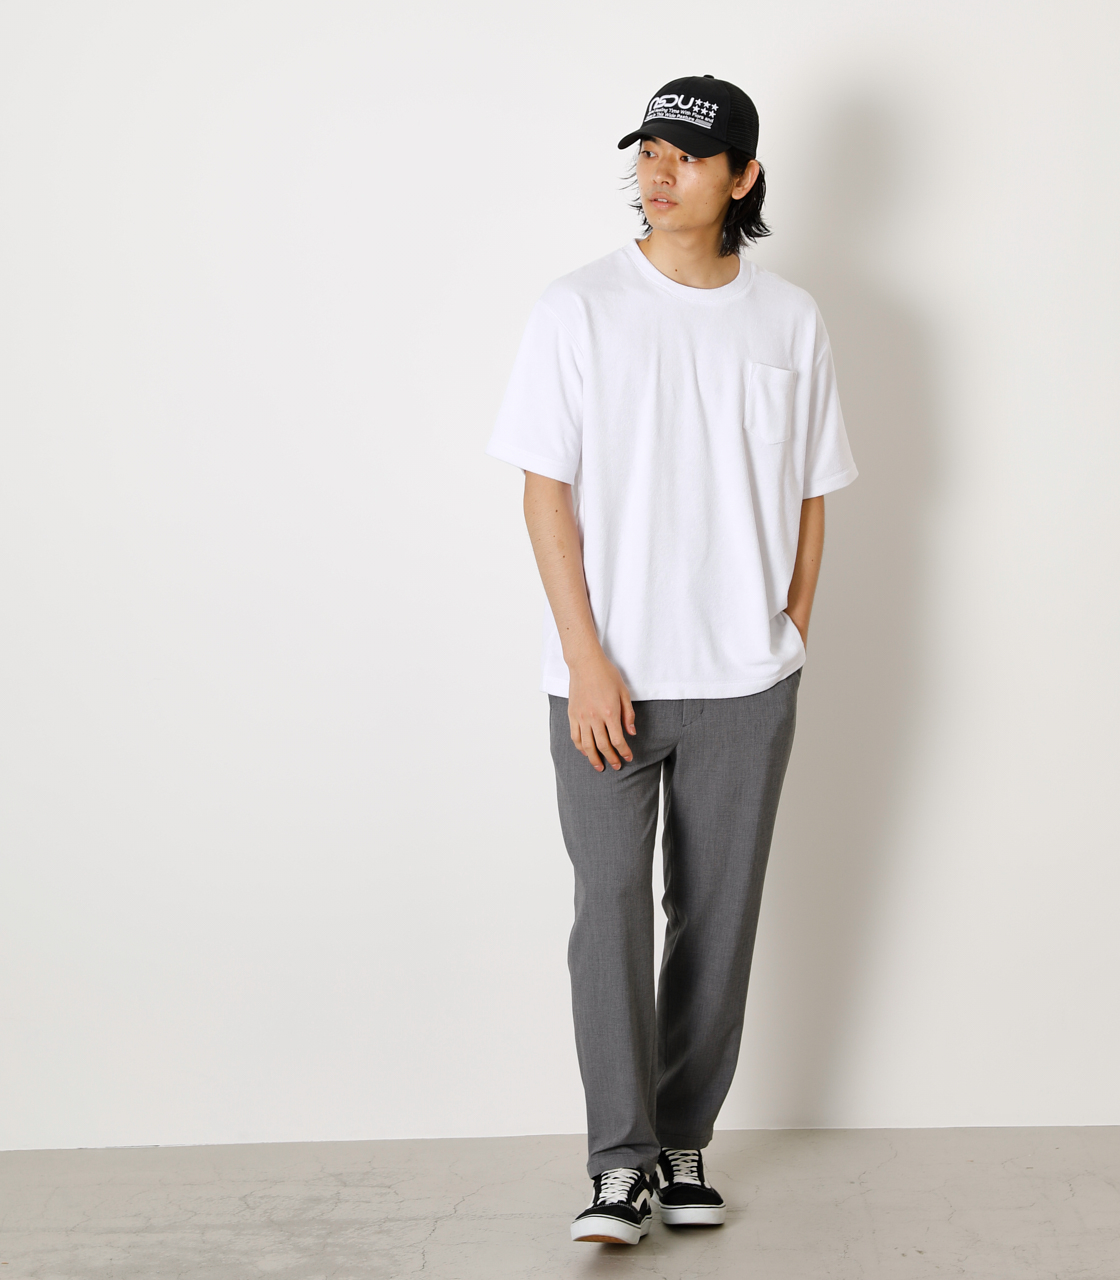 LOOSE PILE TOPS/ルーズパイルトップス 詳細画像 WHT 3